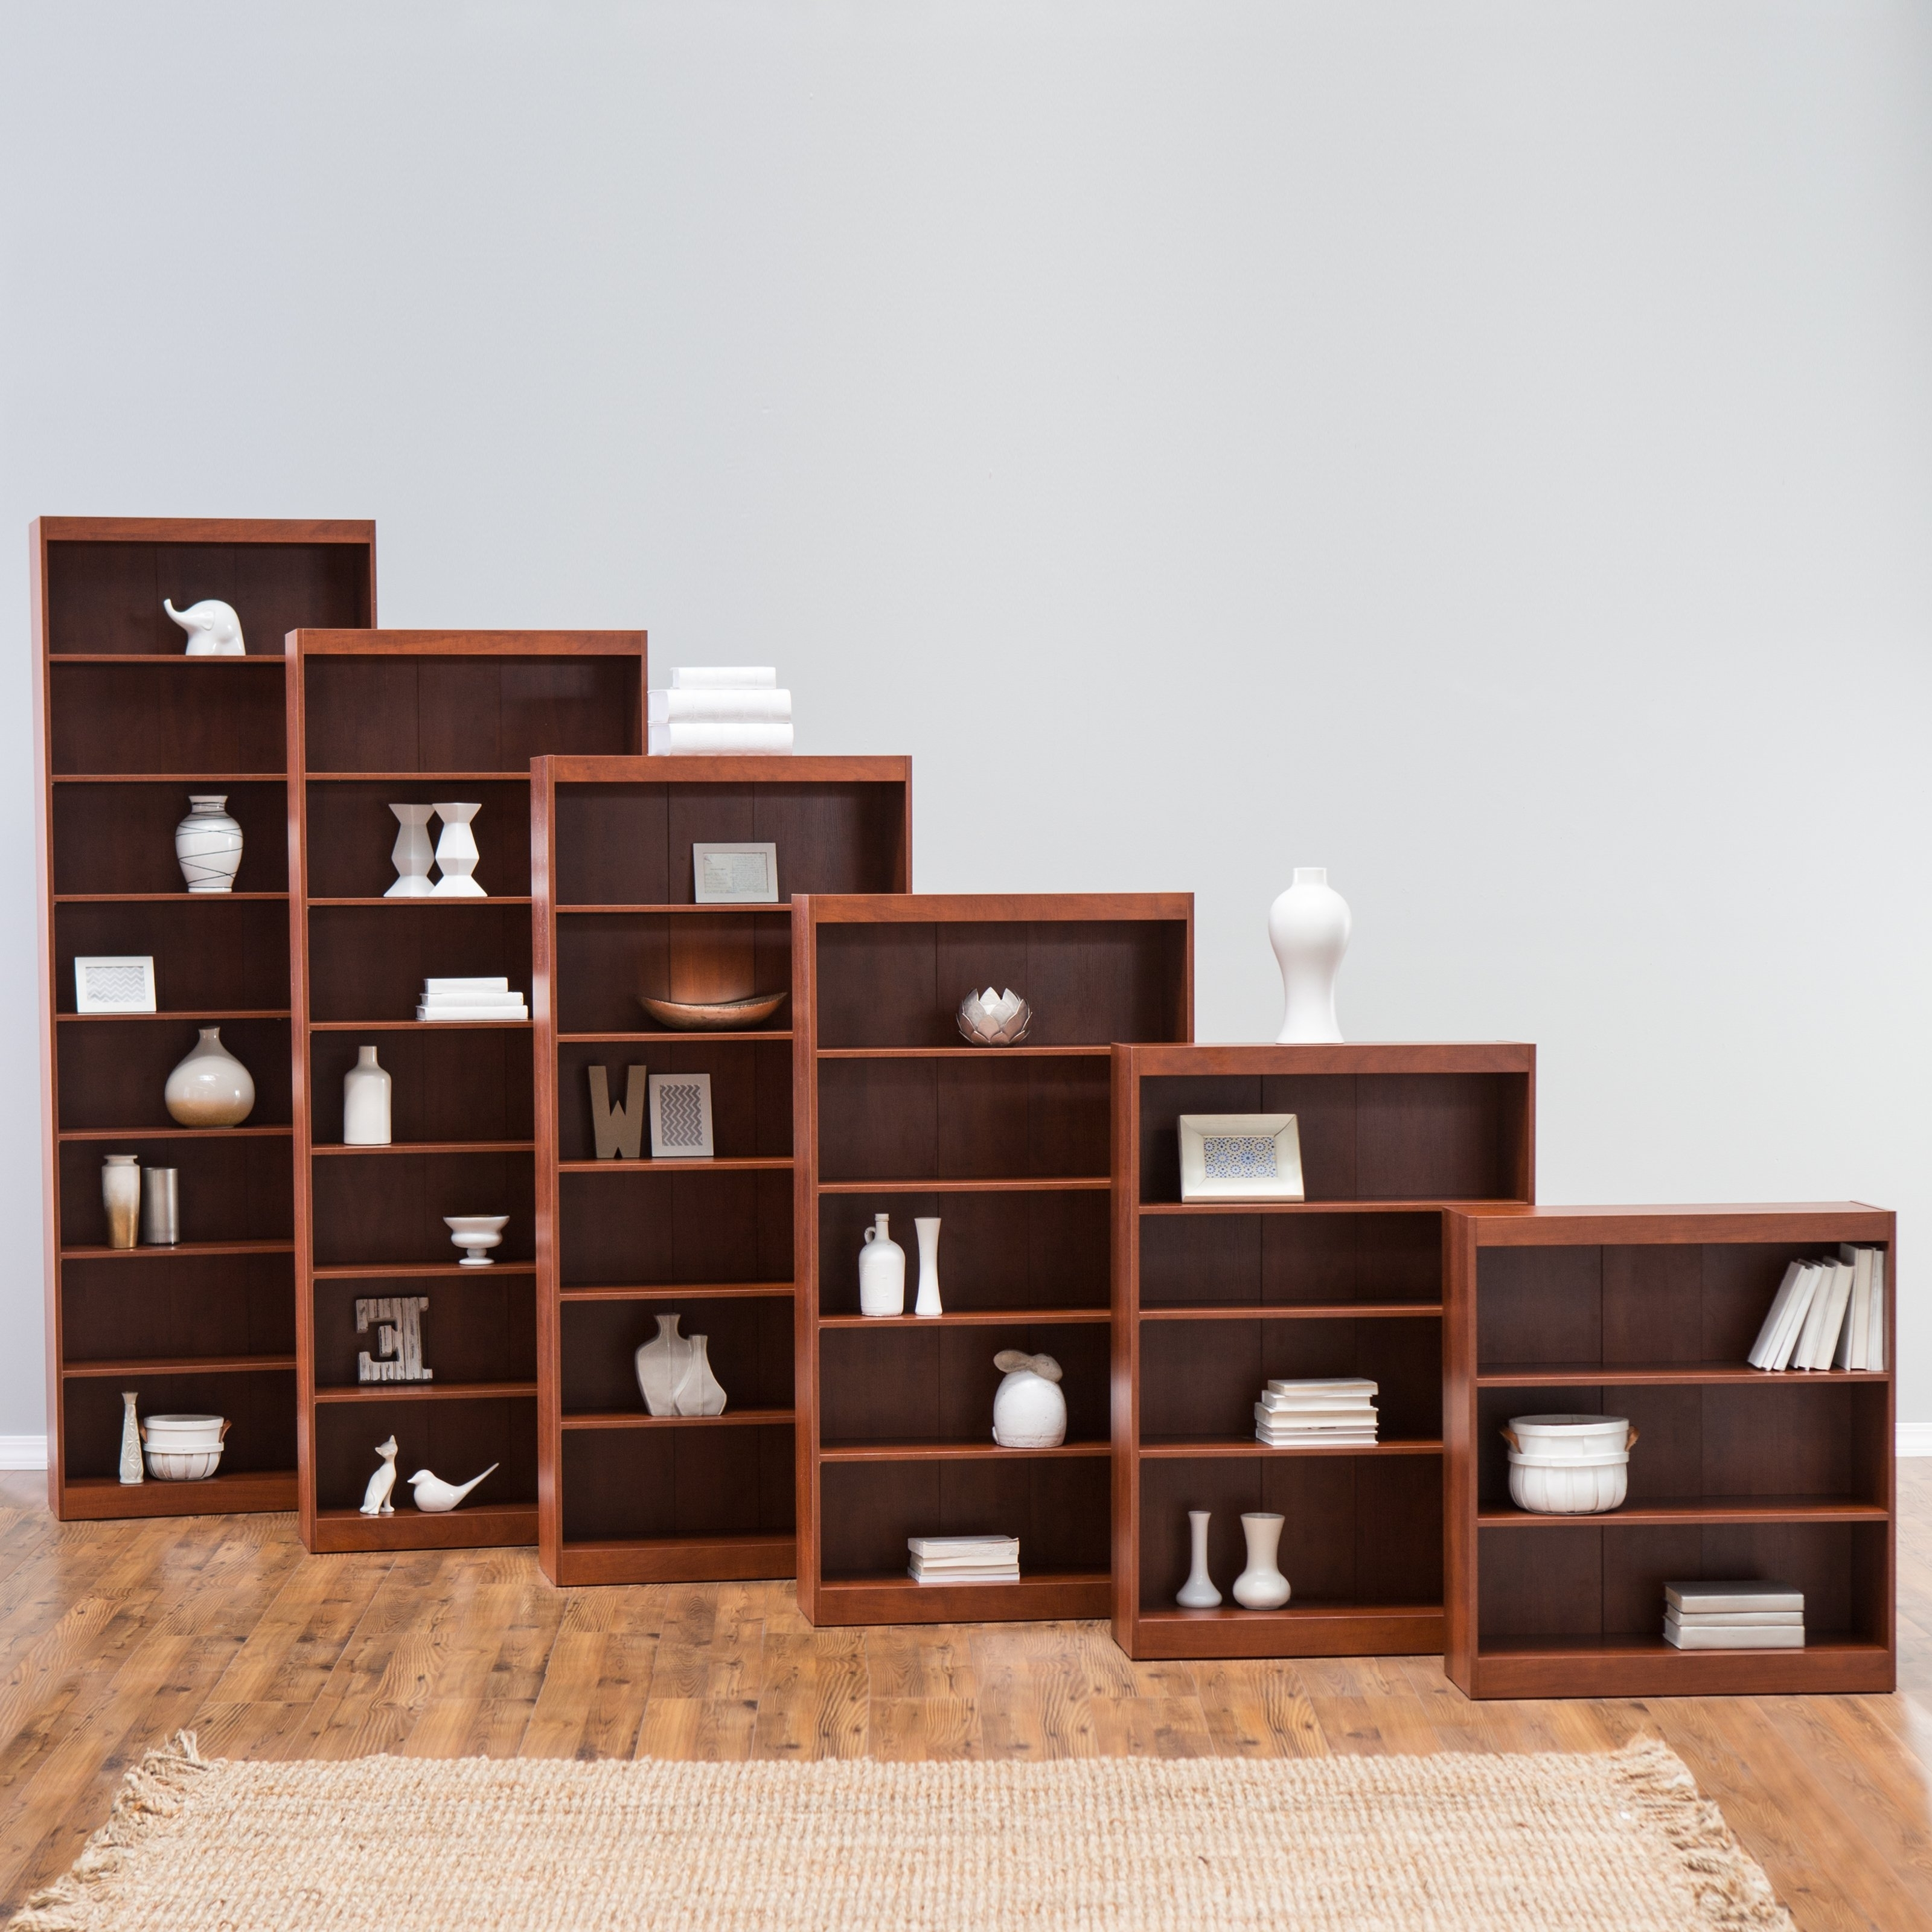 Trendy Cherry Bookcases Throughout Bookcases Ideas: Amazing Cherry Bookcases For Dream Room Cherry (View 15 of 15)